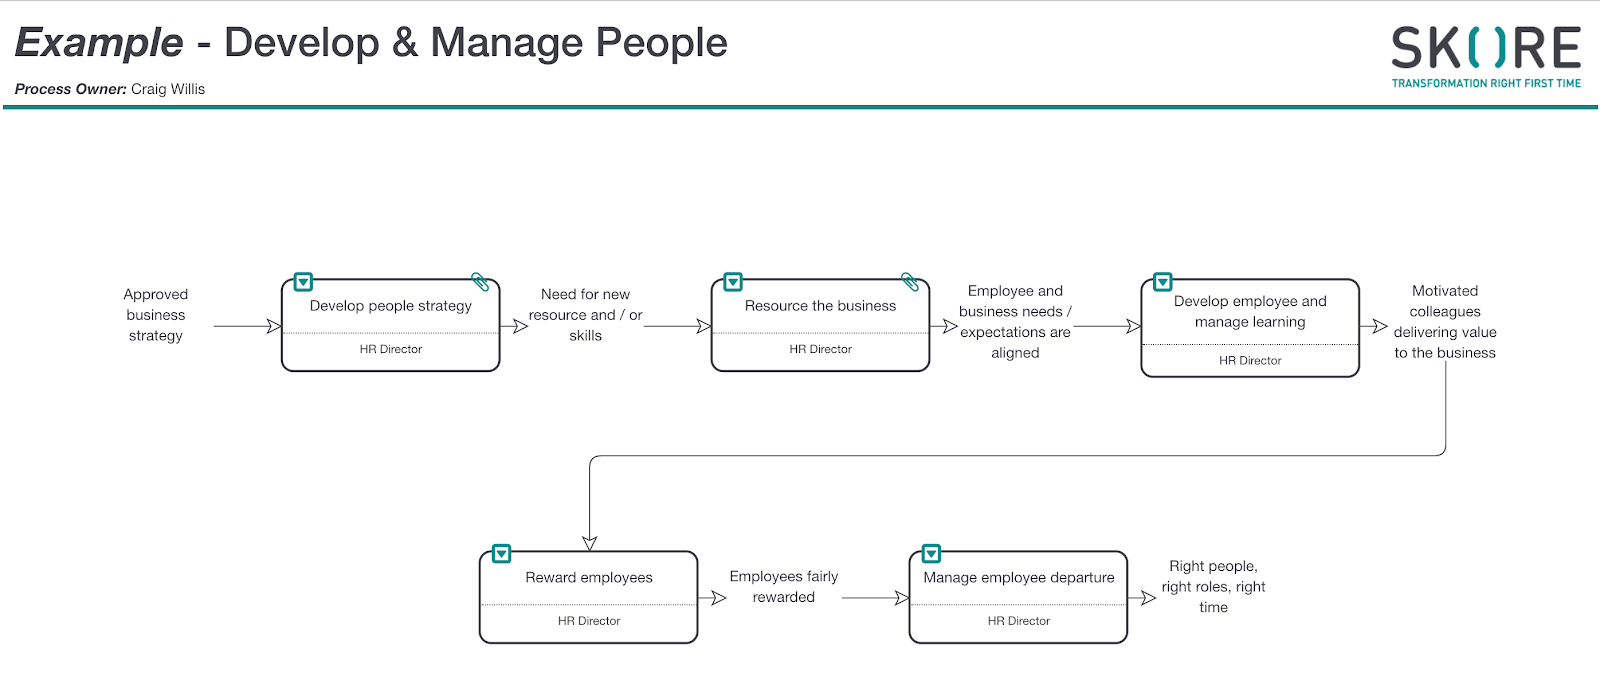 High level view of Skore Process map showing end to end employee lifecycle